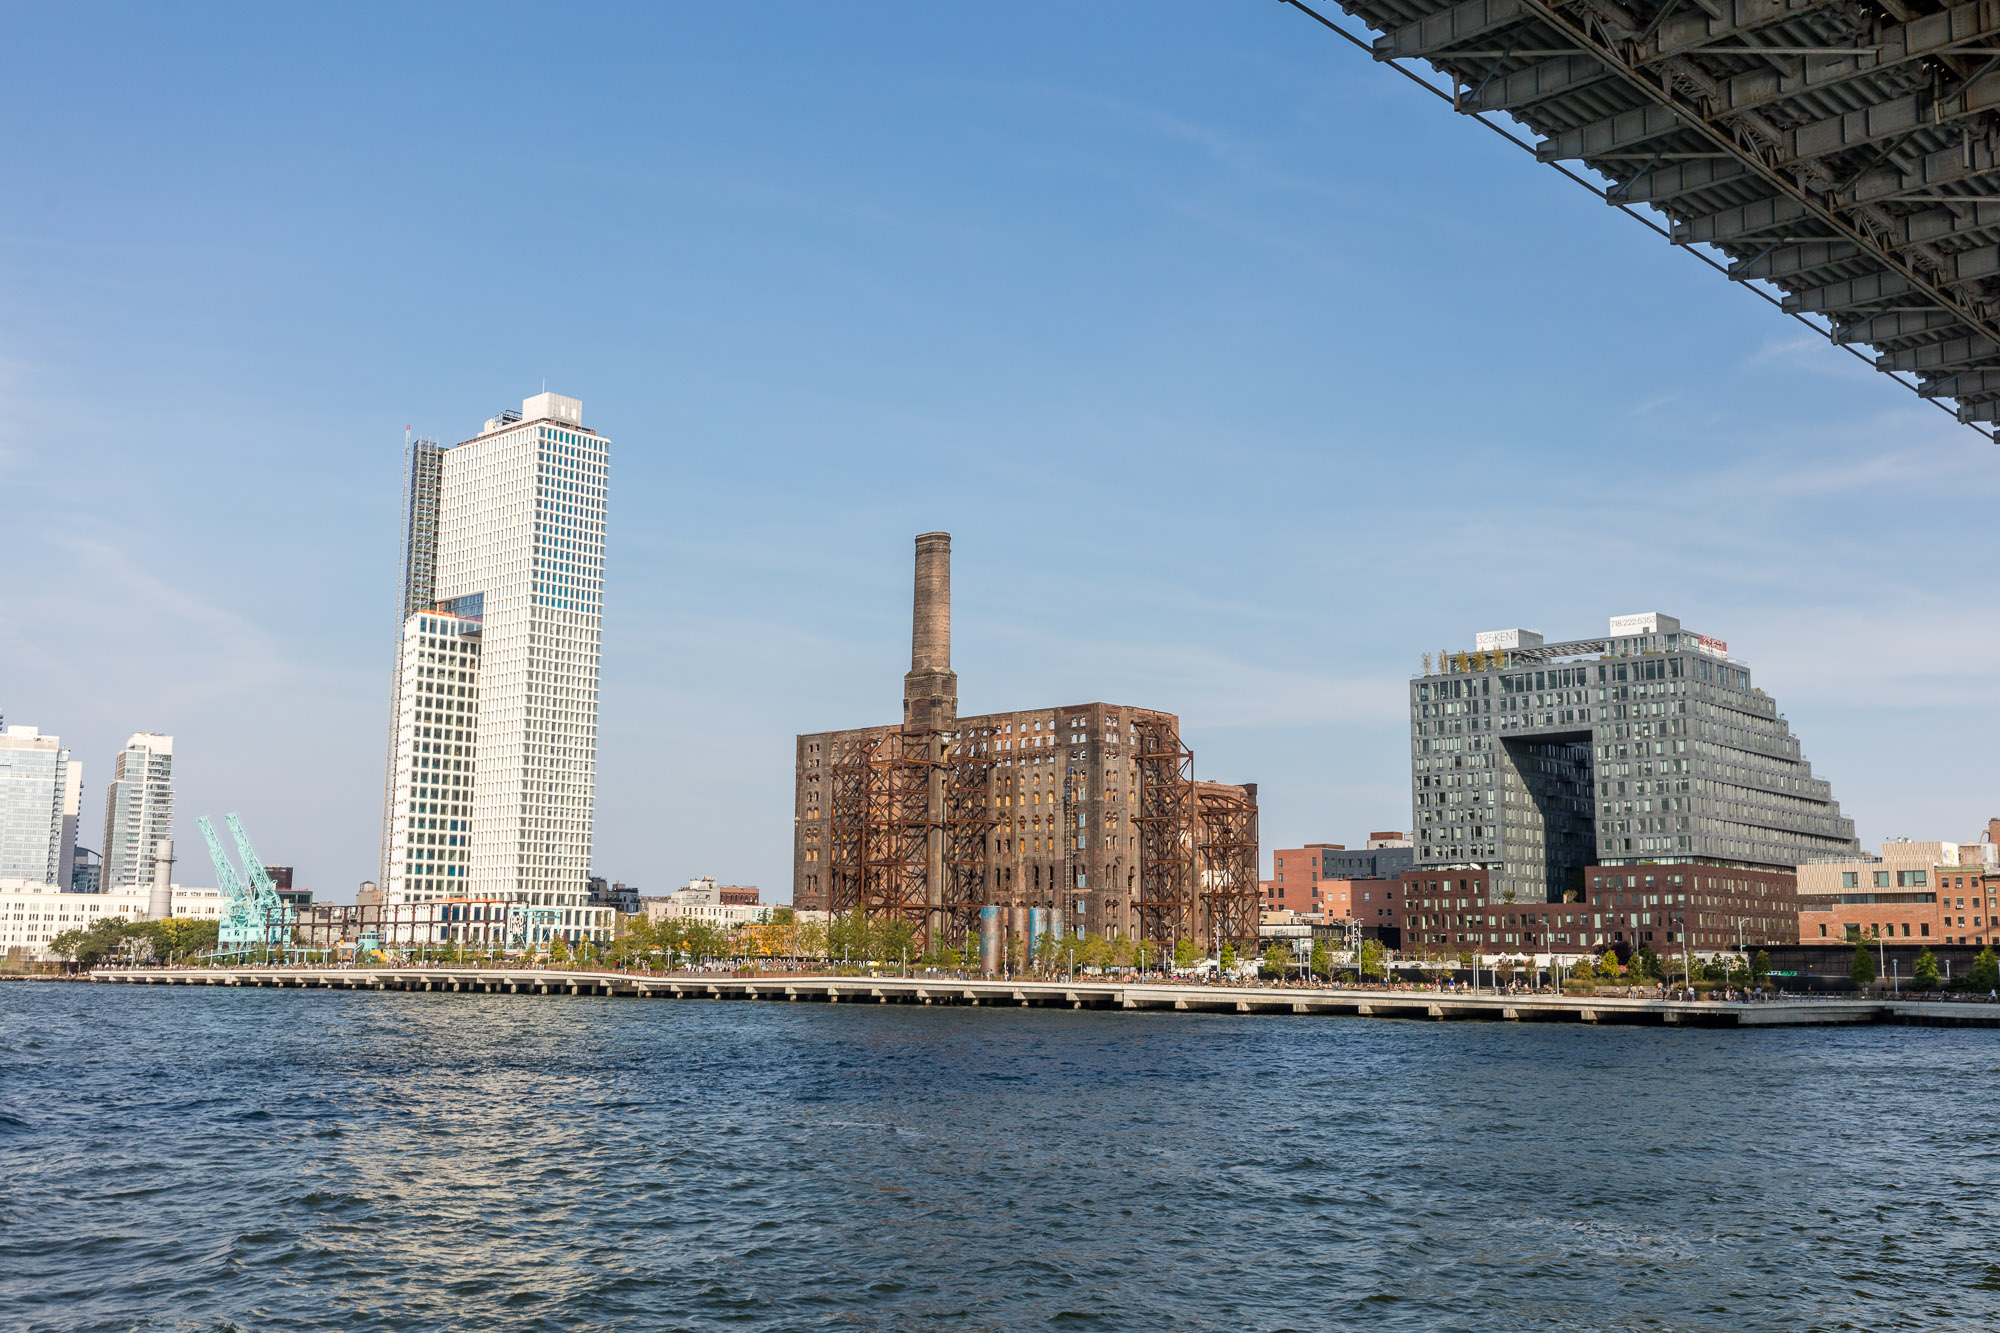 Three buildings stand on a waterfront: One tall white tower, a factory, and a 16-story doughnut-shaped building.